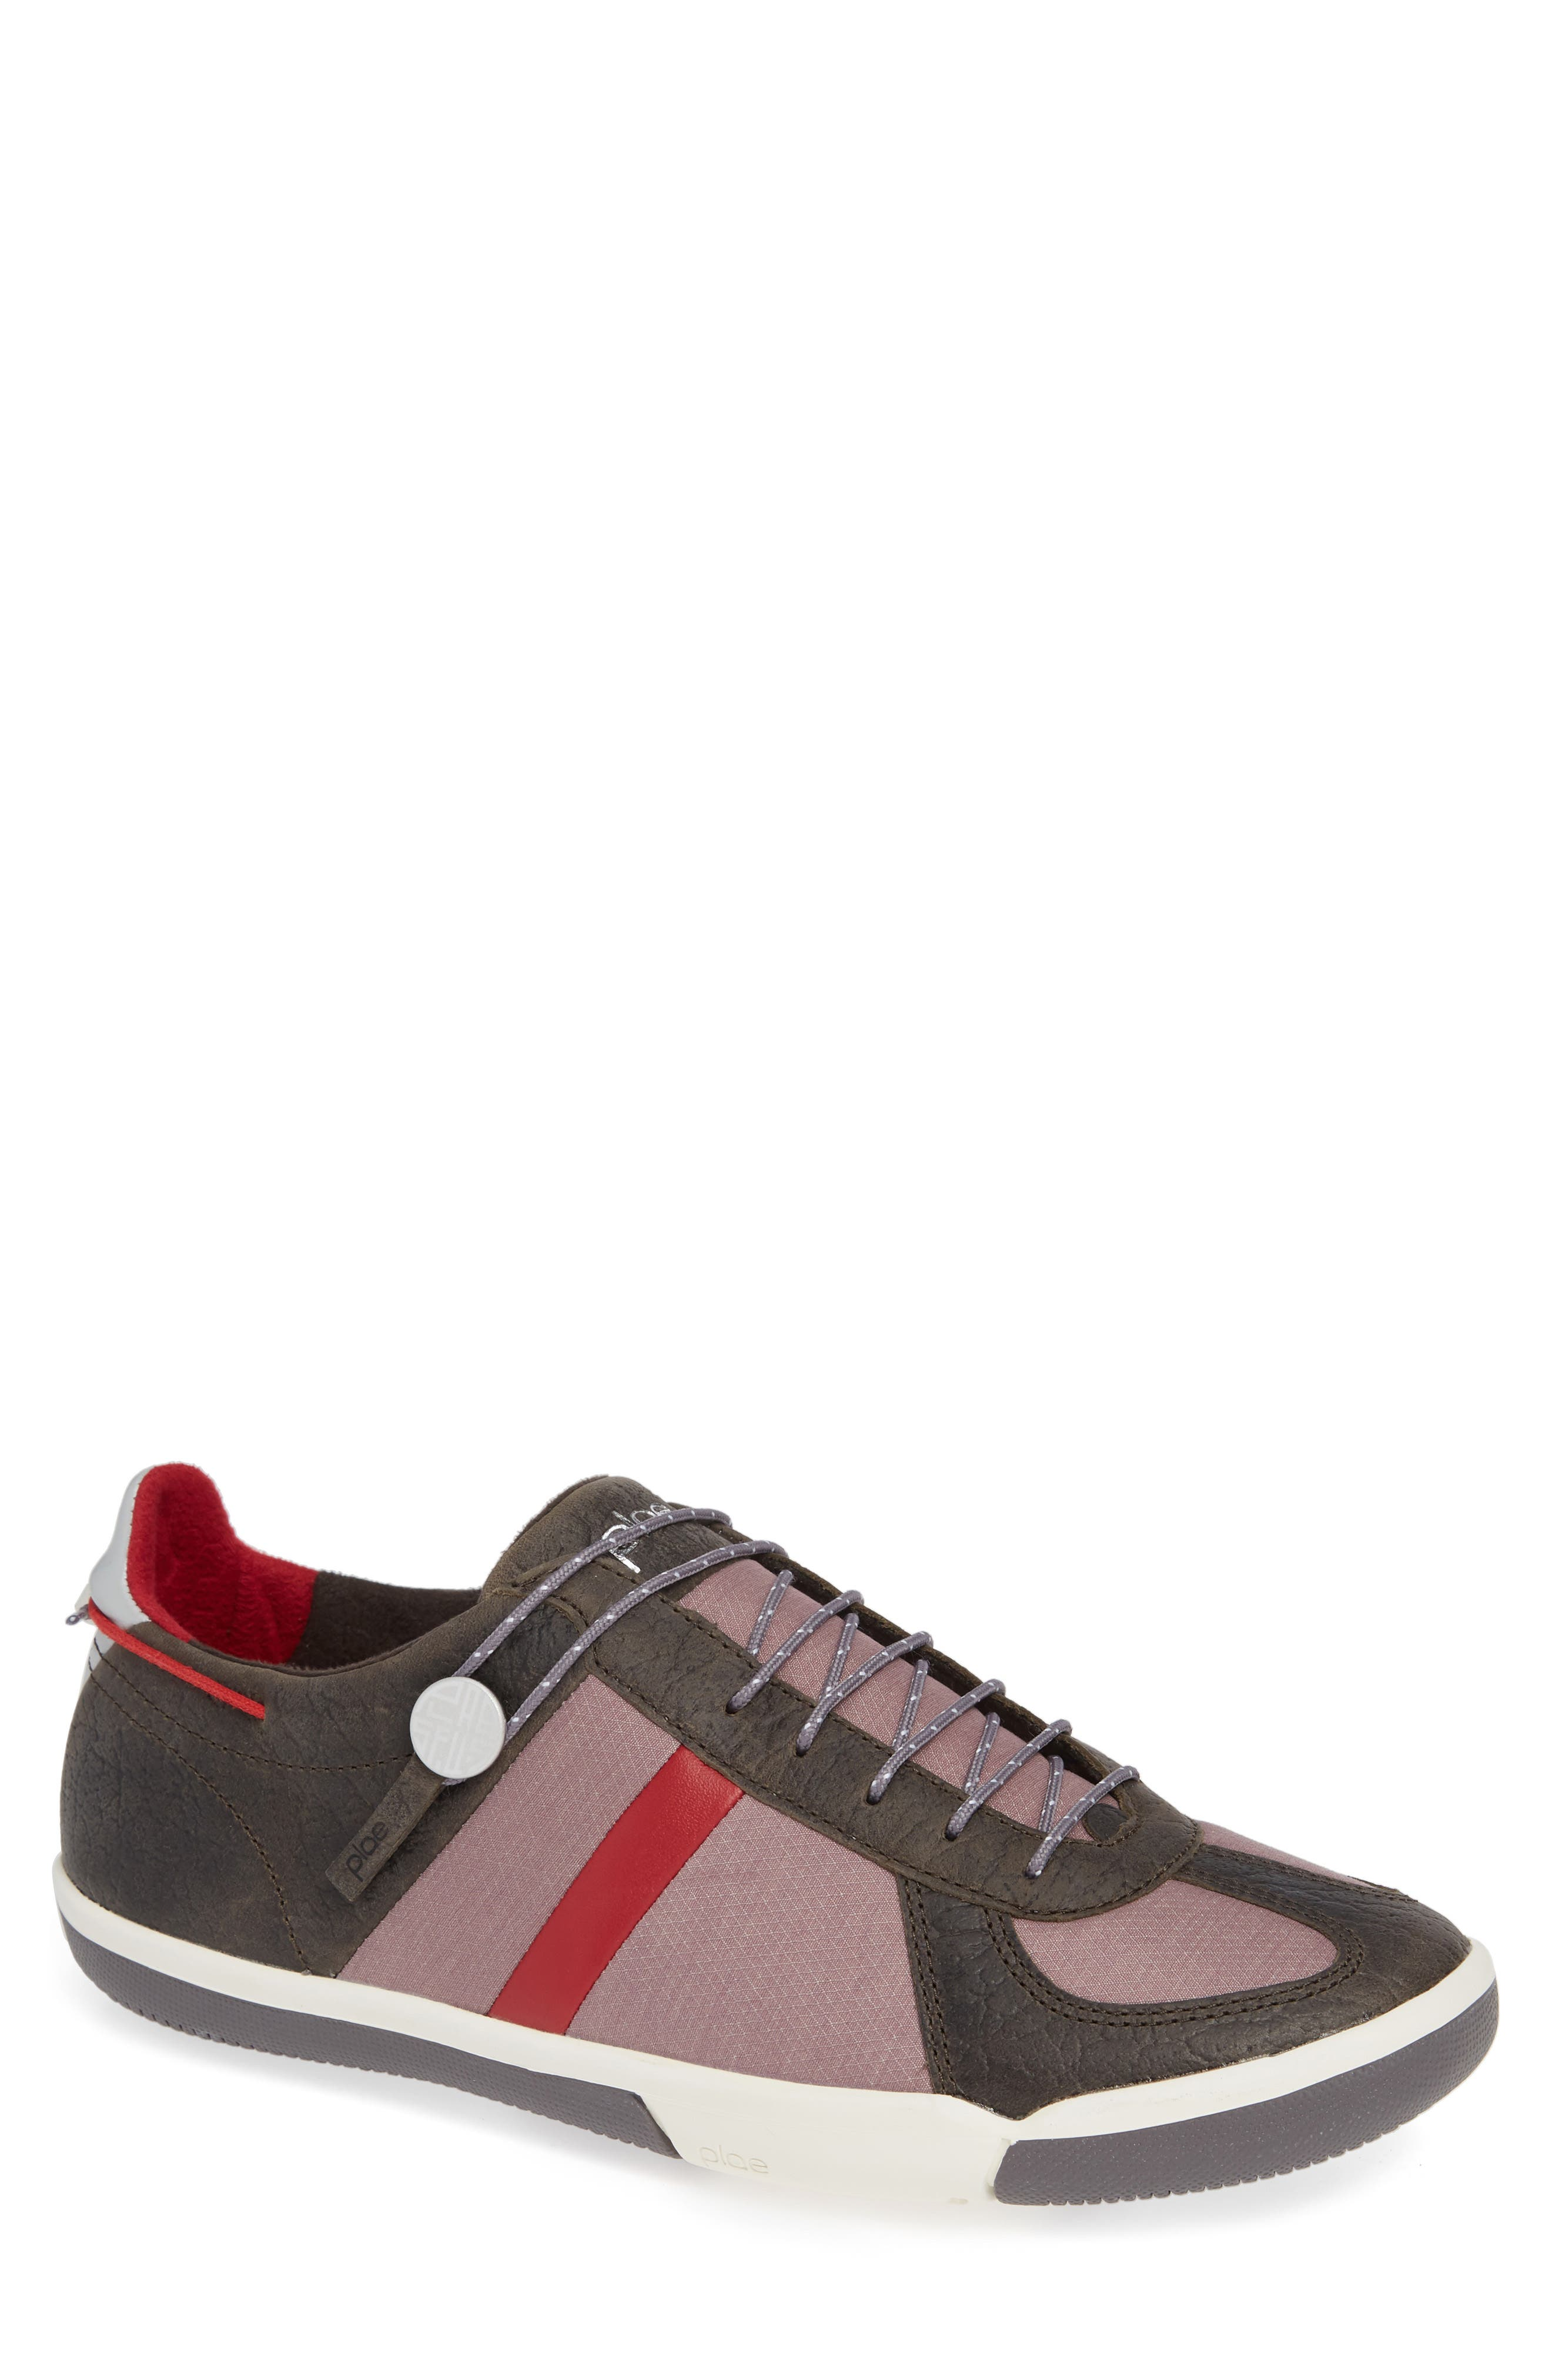 Butler Low-Top Sneaker,                         Main,                         color, EMBER BROWN LEATHER